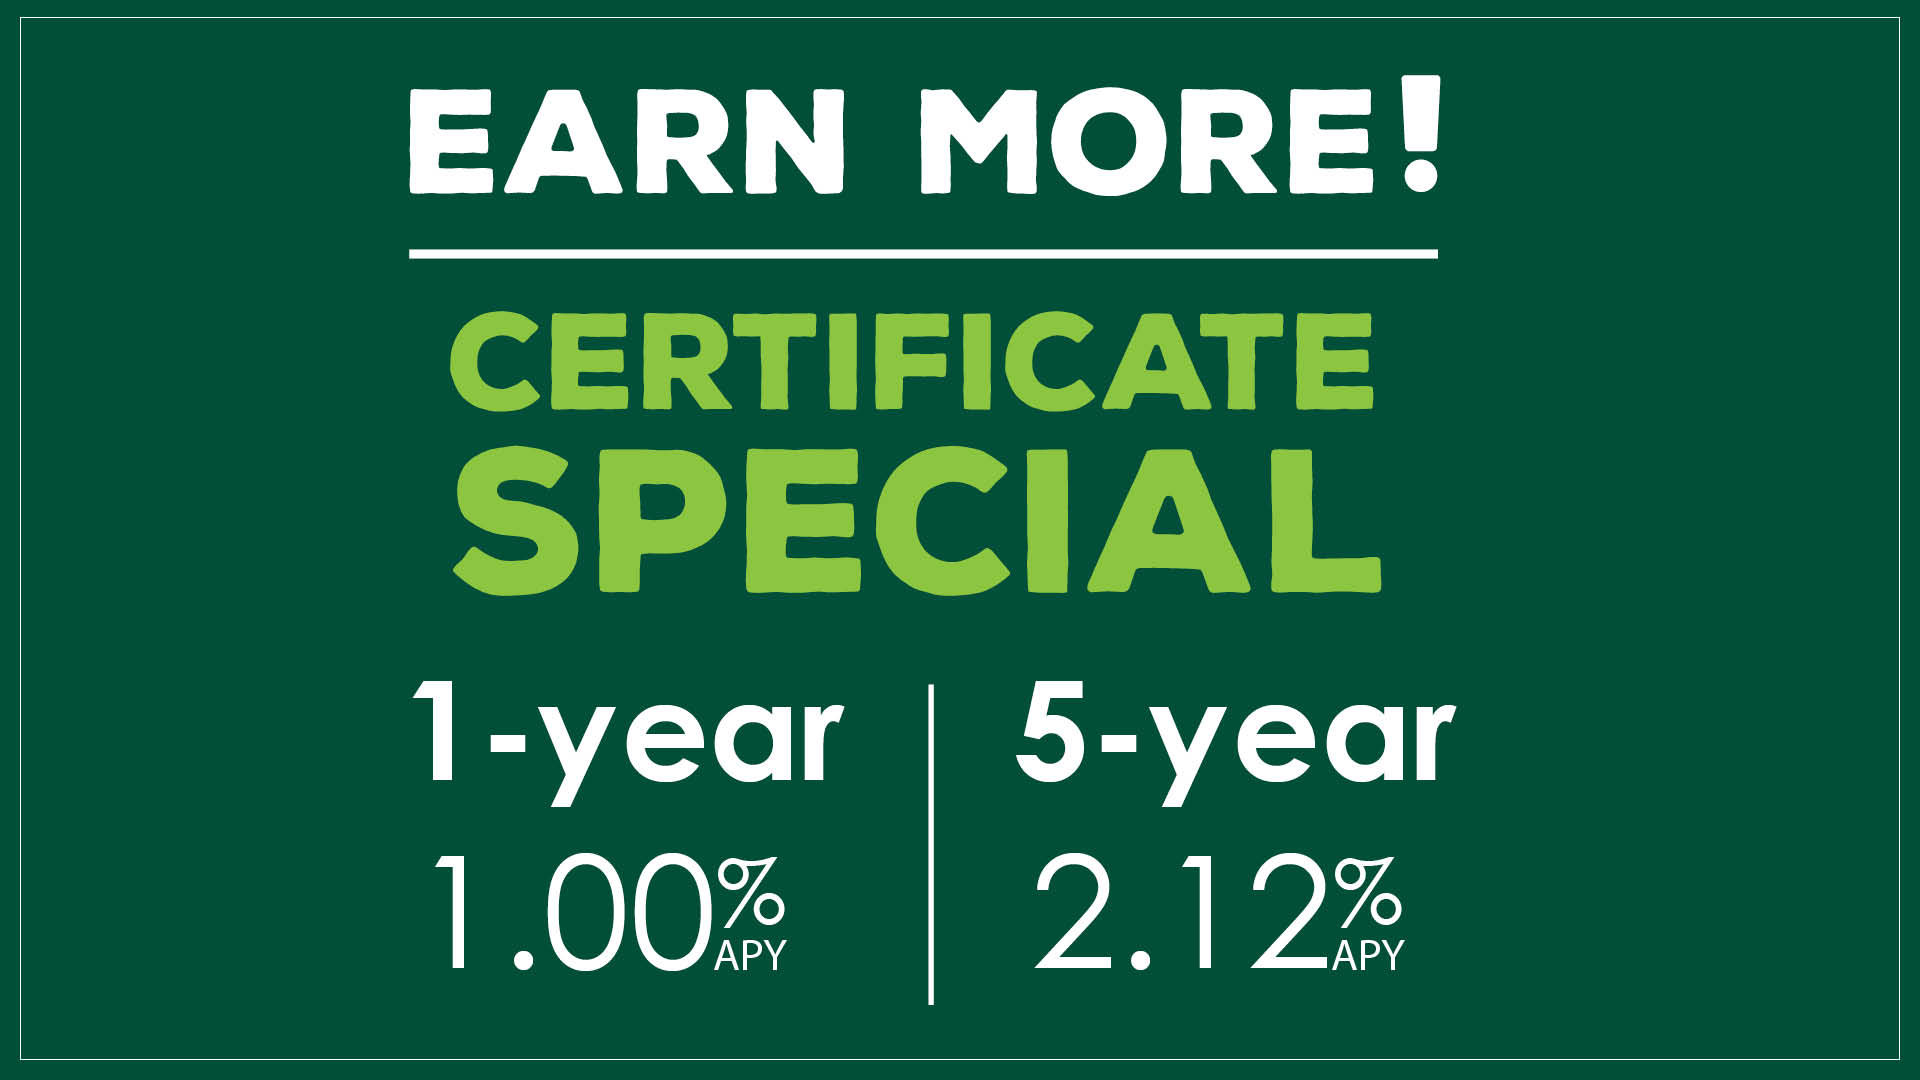 Limited-Time Offer: Earn More with an MSUFCU 7-Year Certificate